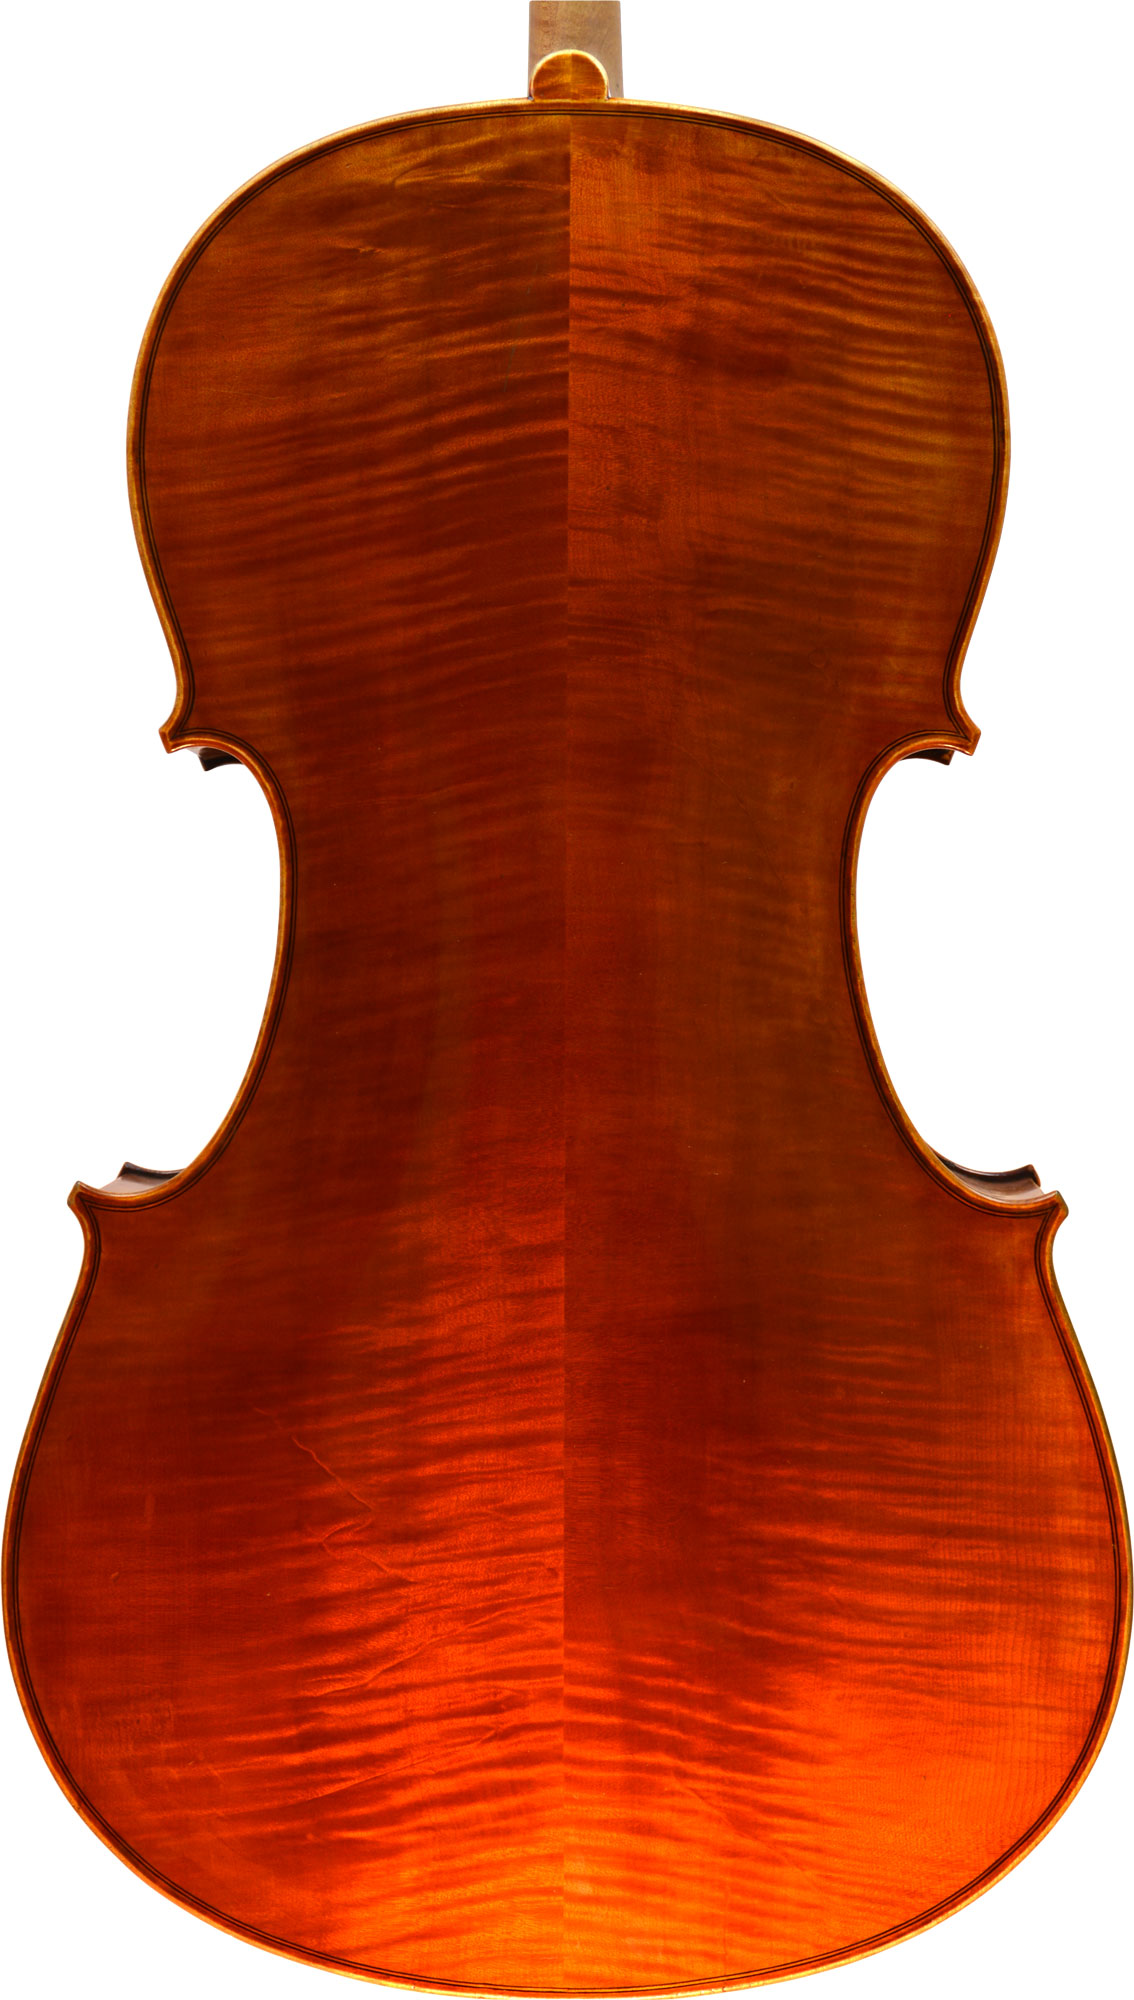 DV542-Cello-Allemand-fond